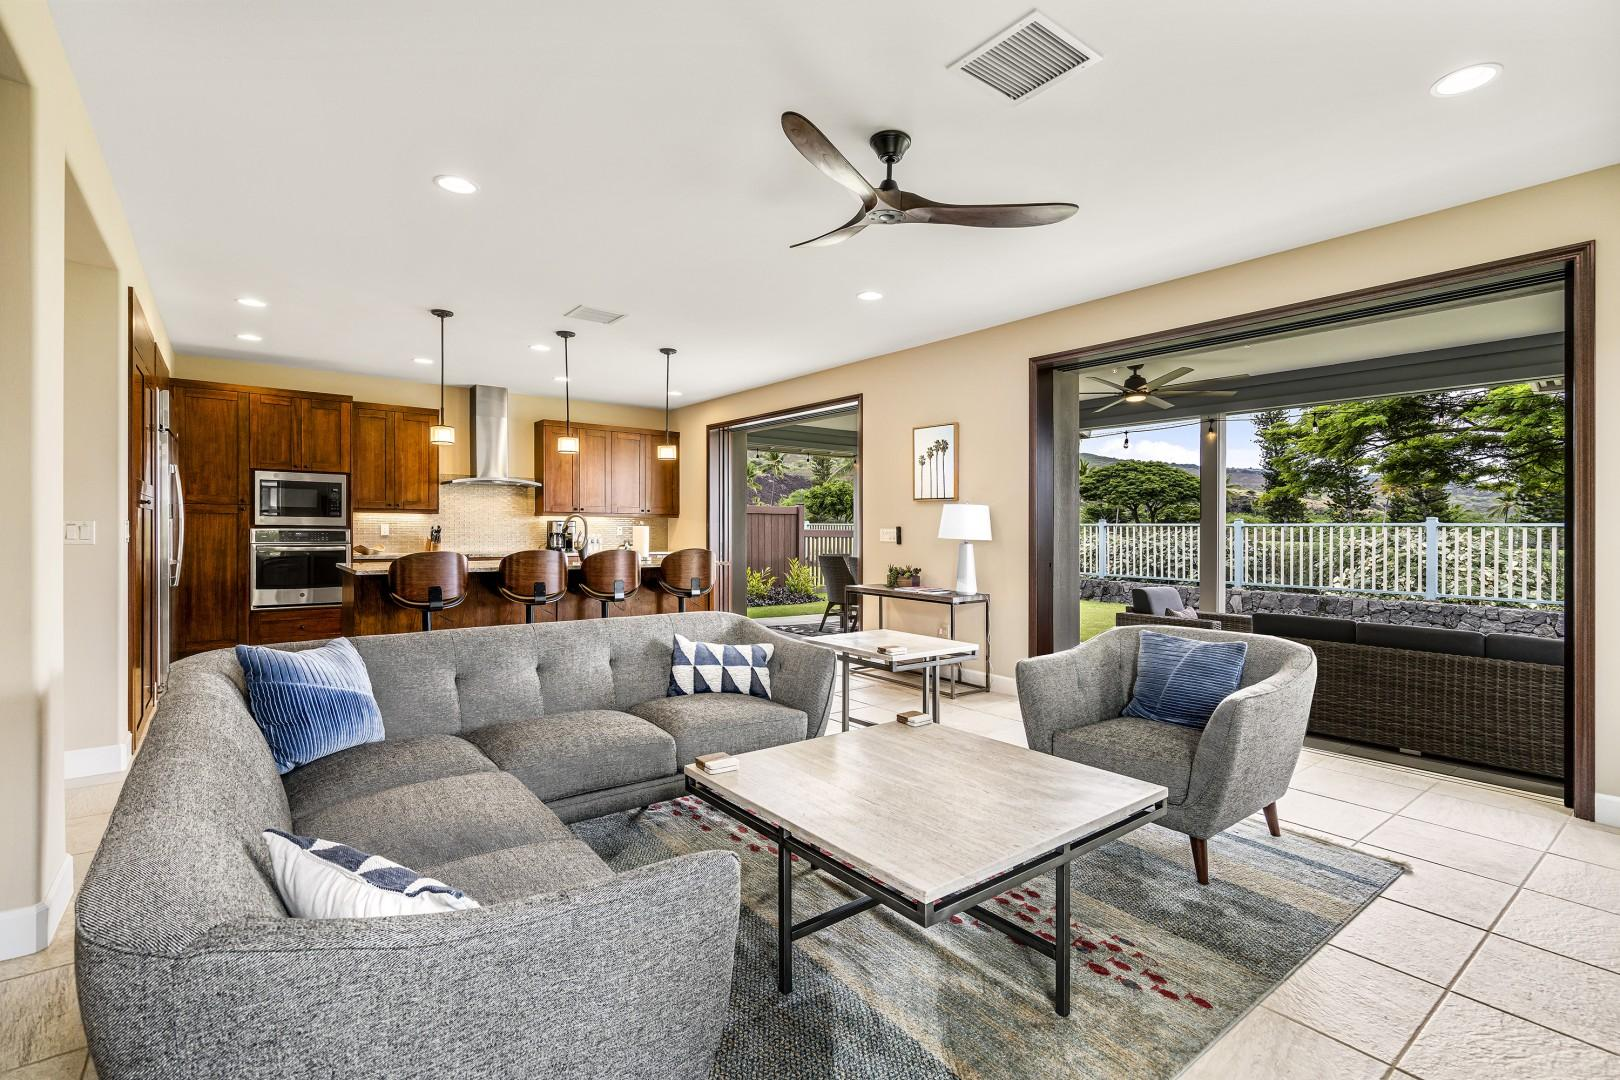 Large sliding doors to the Lanai embrace the outdoor lifestyle here in Hawaii!